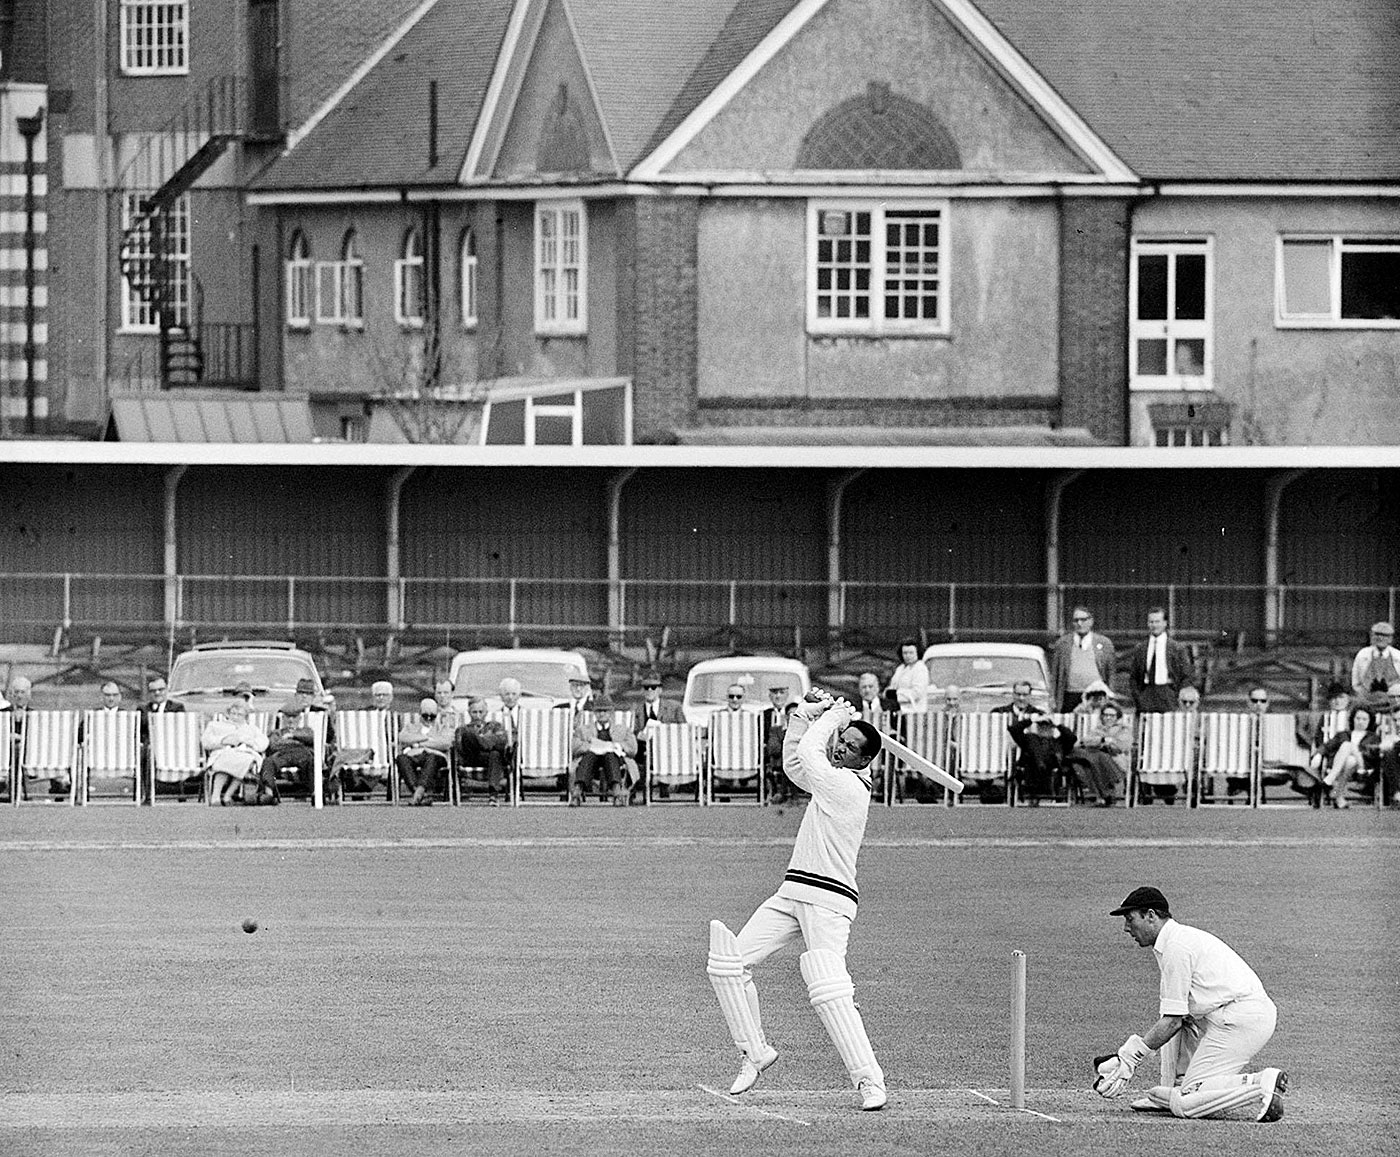 Sobers left players and fans spellbound during his county stint with Nottinghamshire, during which, among other things, he hit six sixes off an over